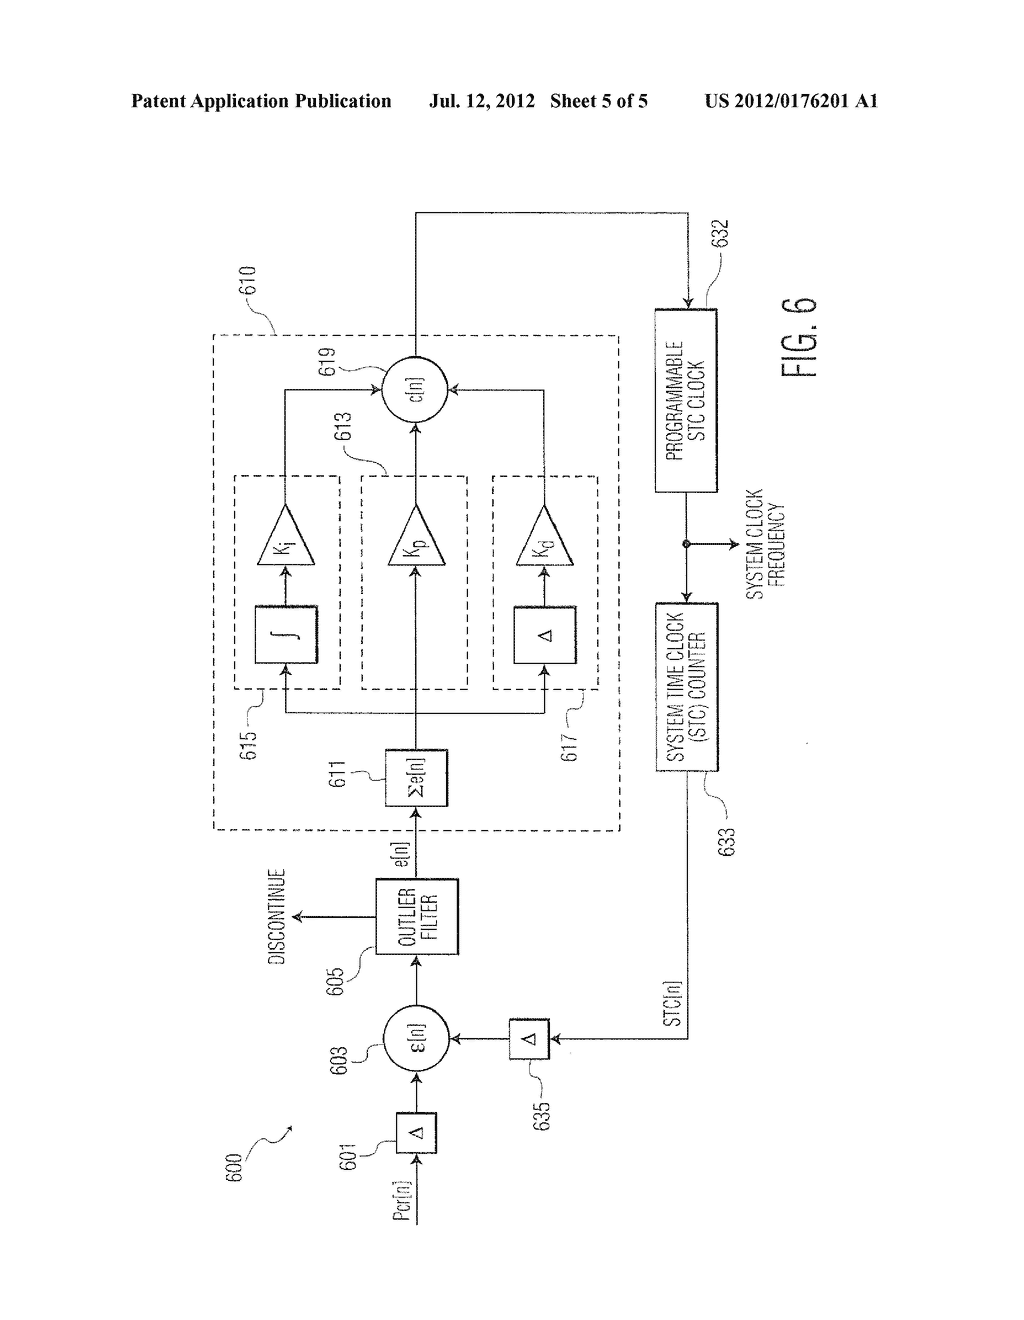 hight resolution of pid control for transmitter receiver synchronization diagram schematic and image 06